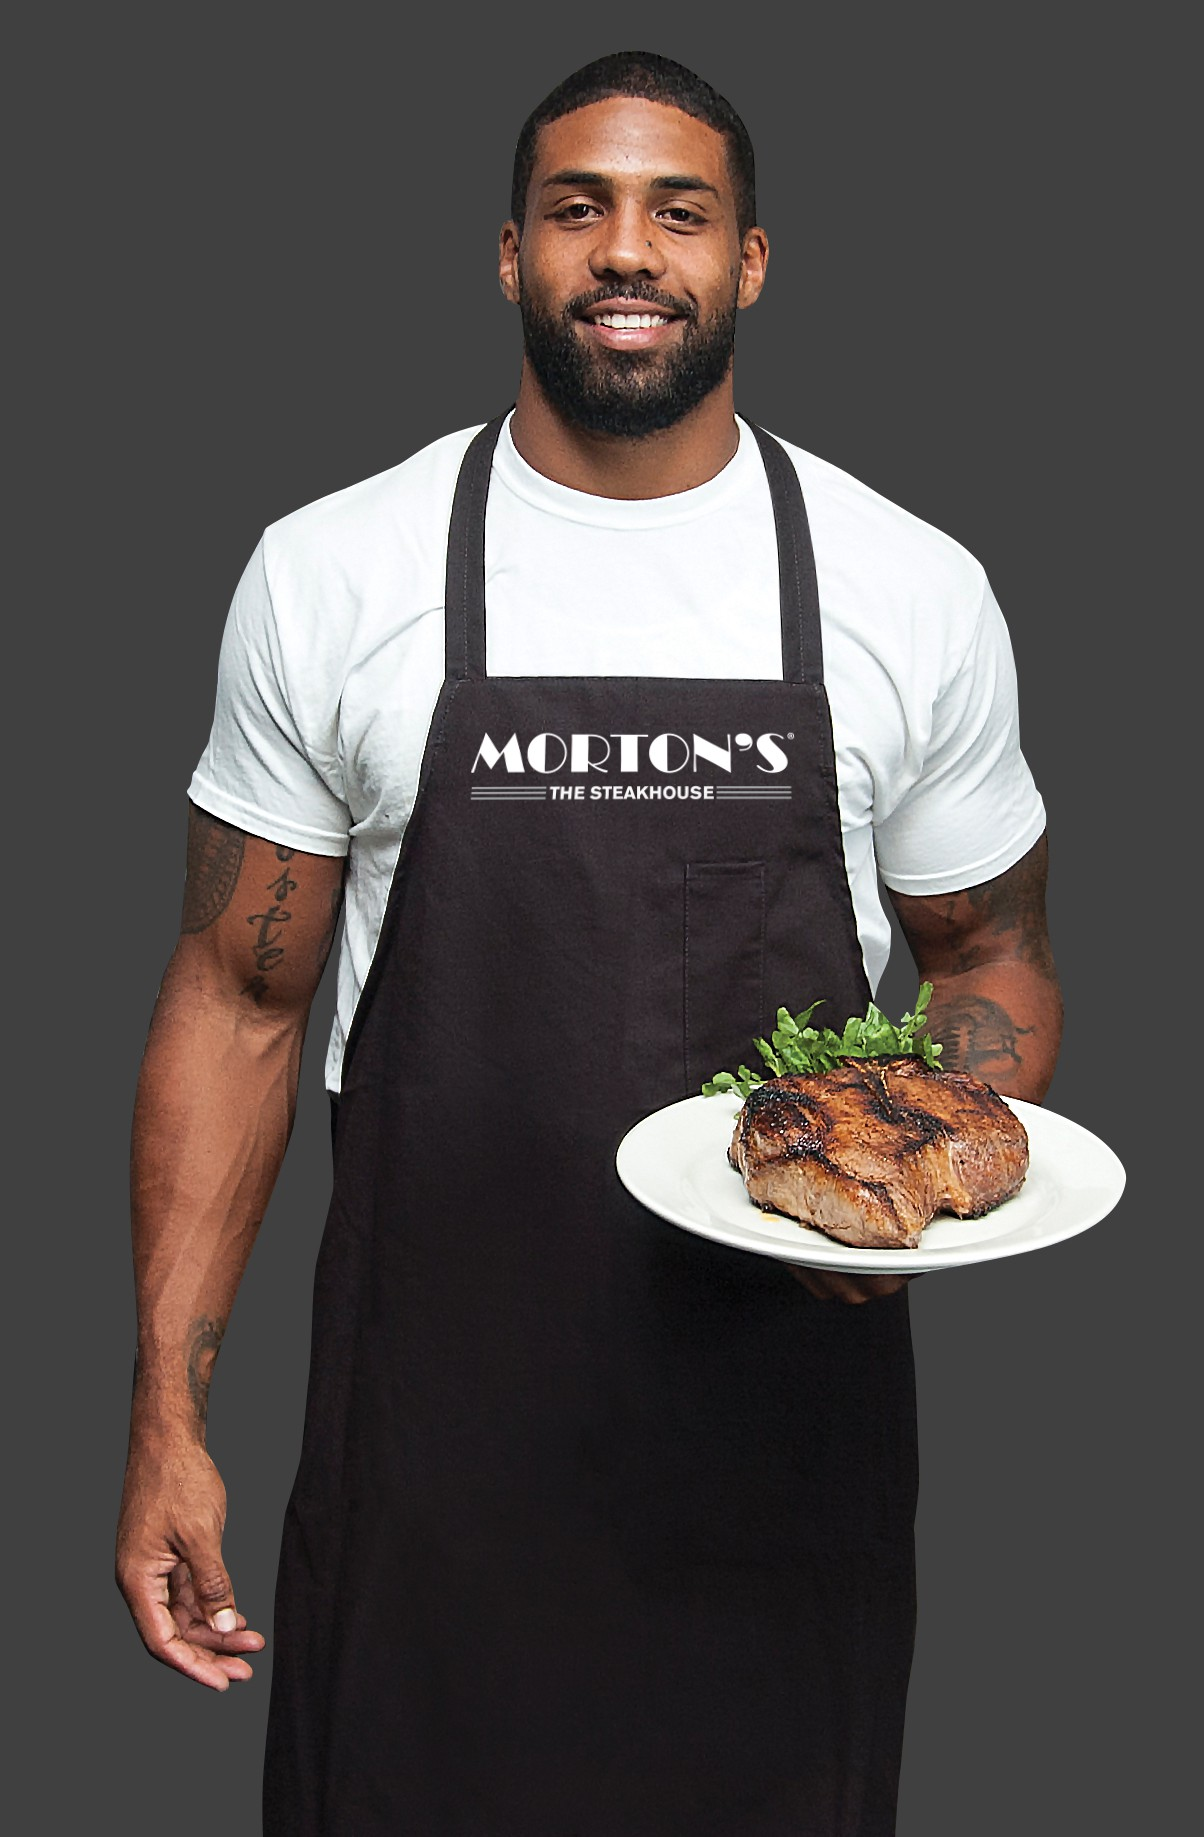 Celebrity Servers with Houston Texans Arian Foster at Mortonu0026#39;s The Steakhouse